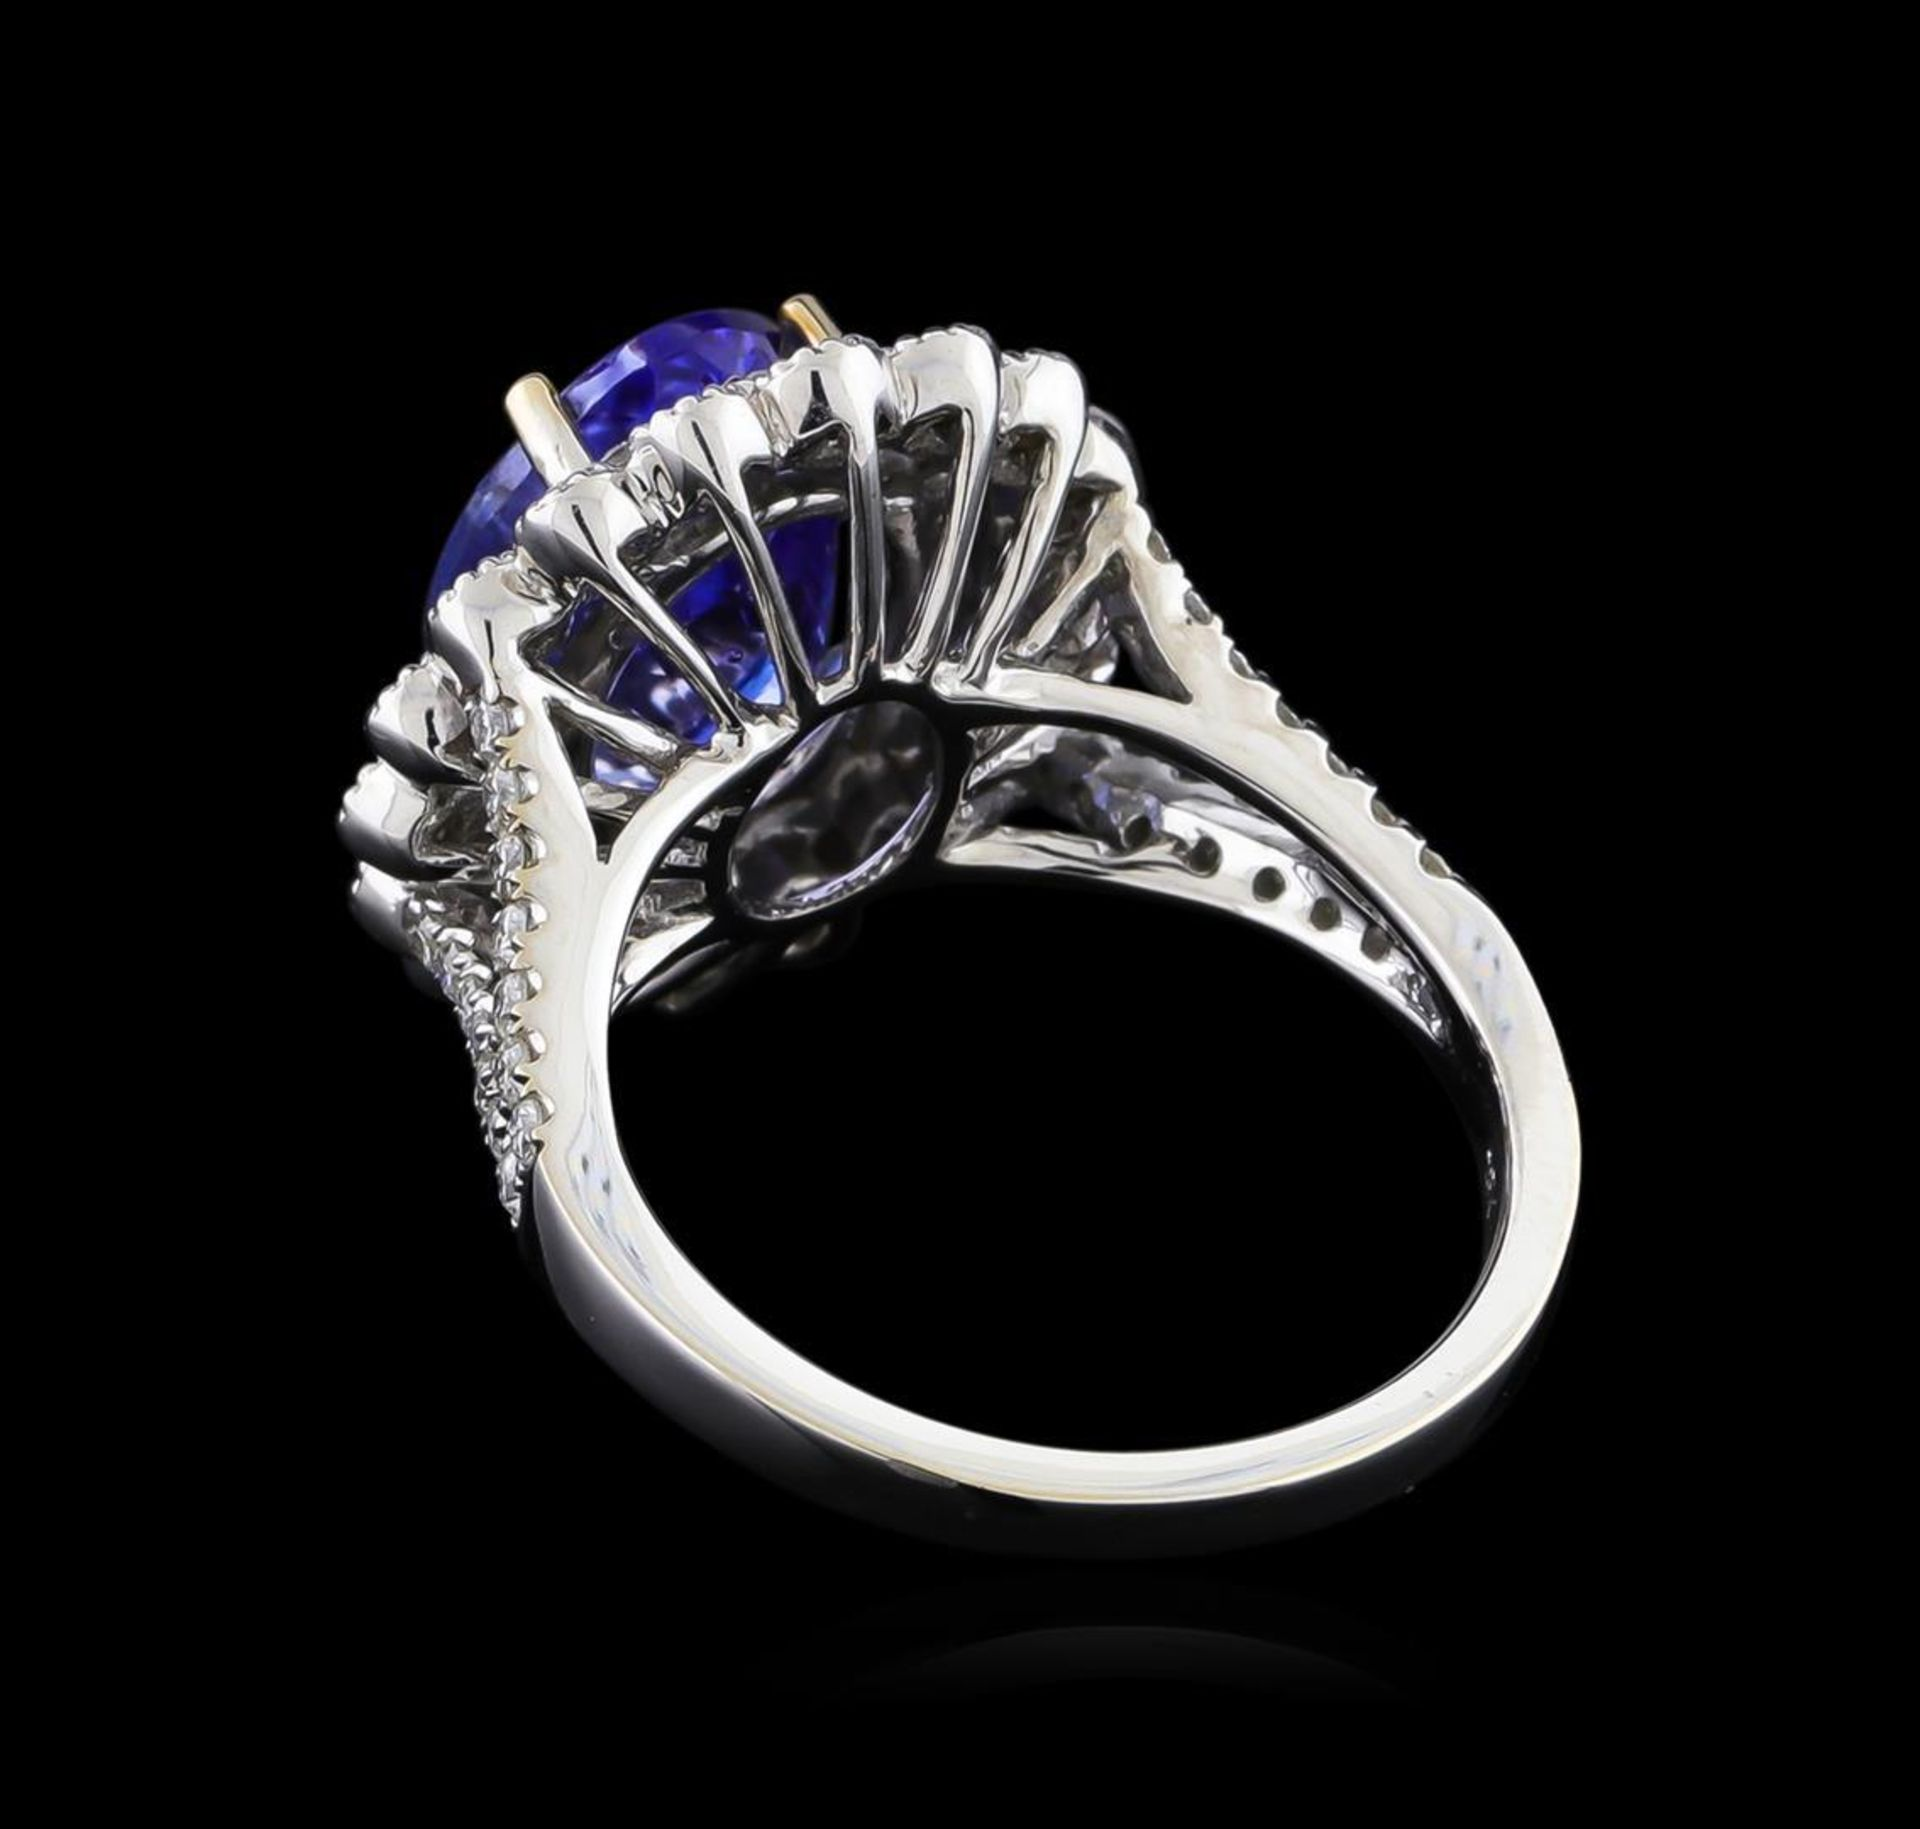 18KT White Gold 3.95 ctw Tanzanite and Diamond Ring - Image 3 of 5